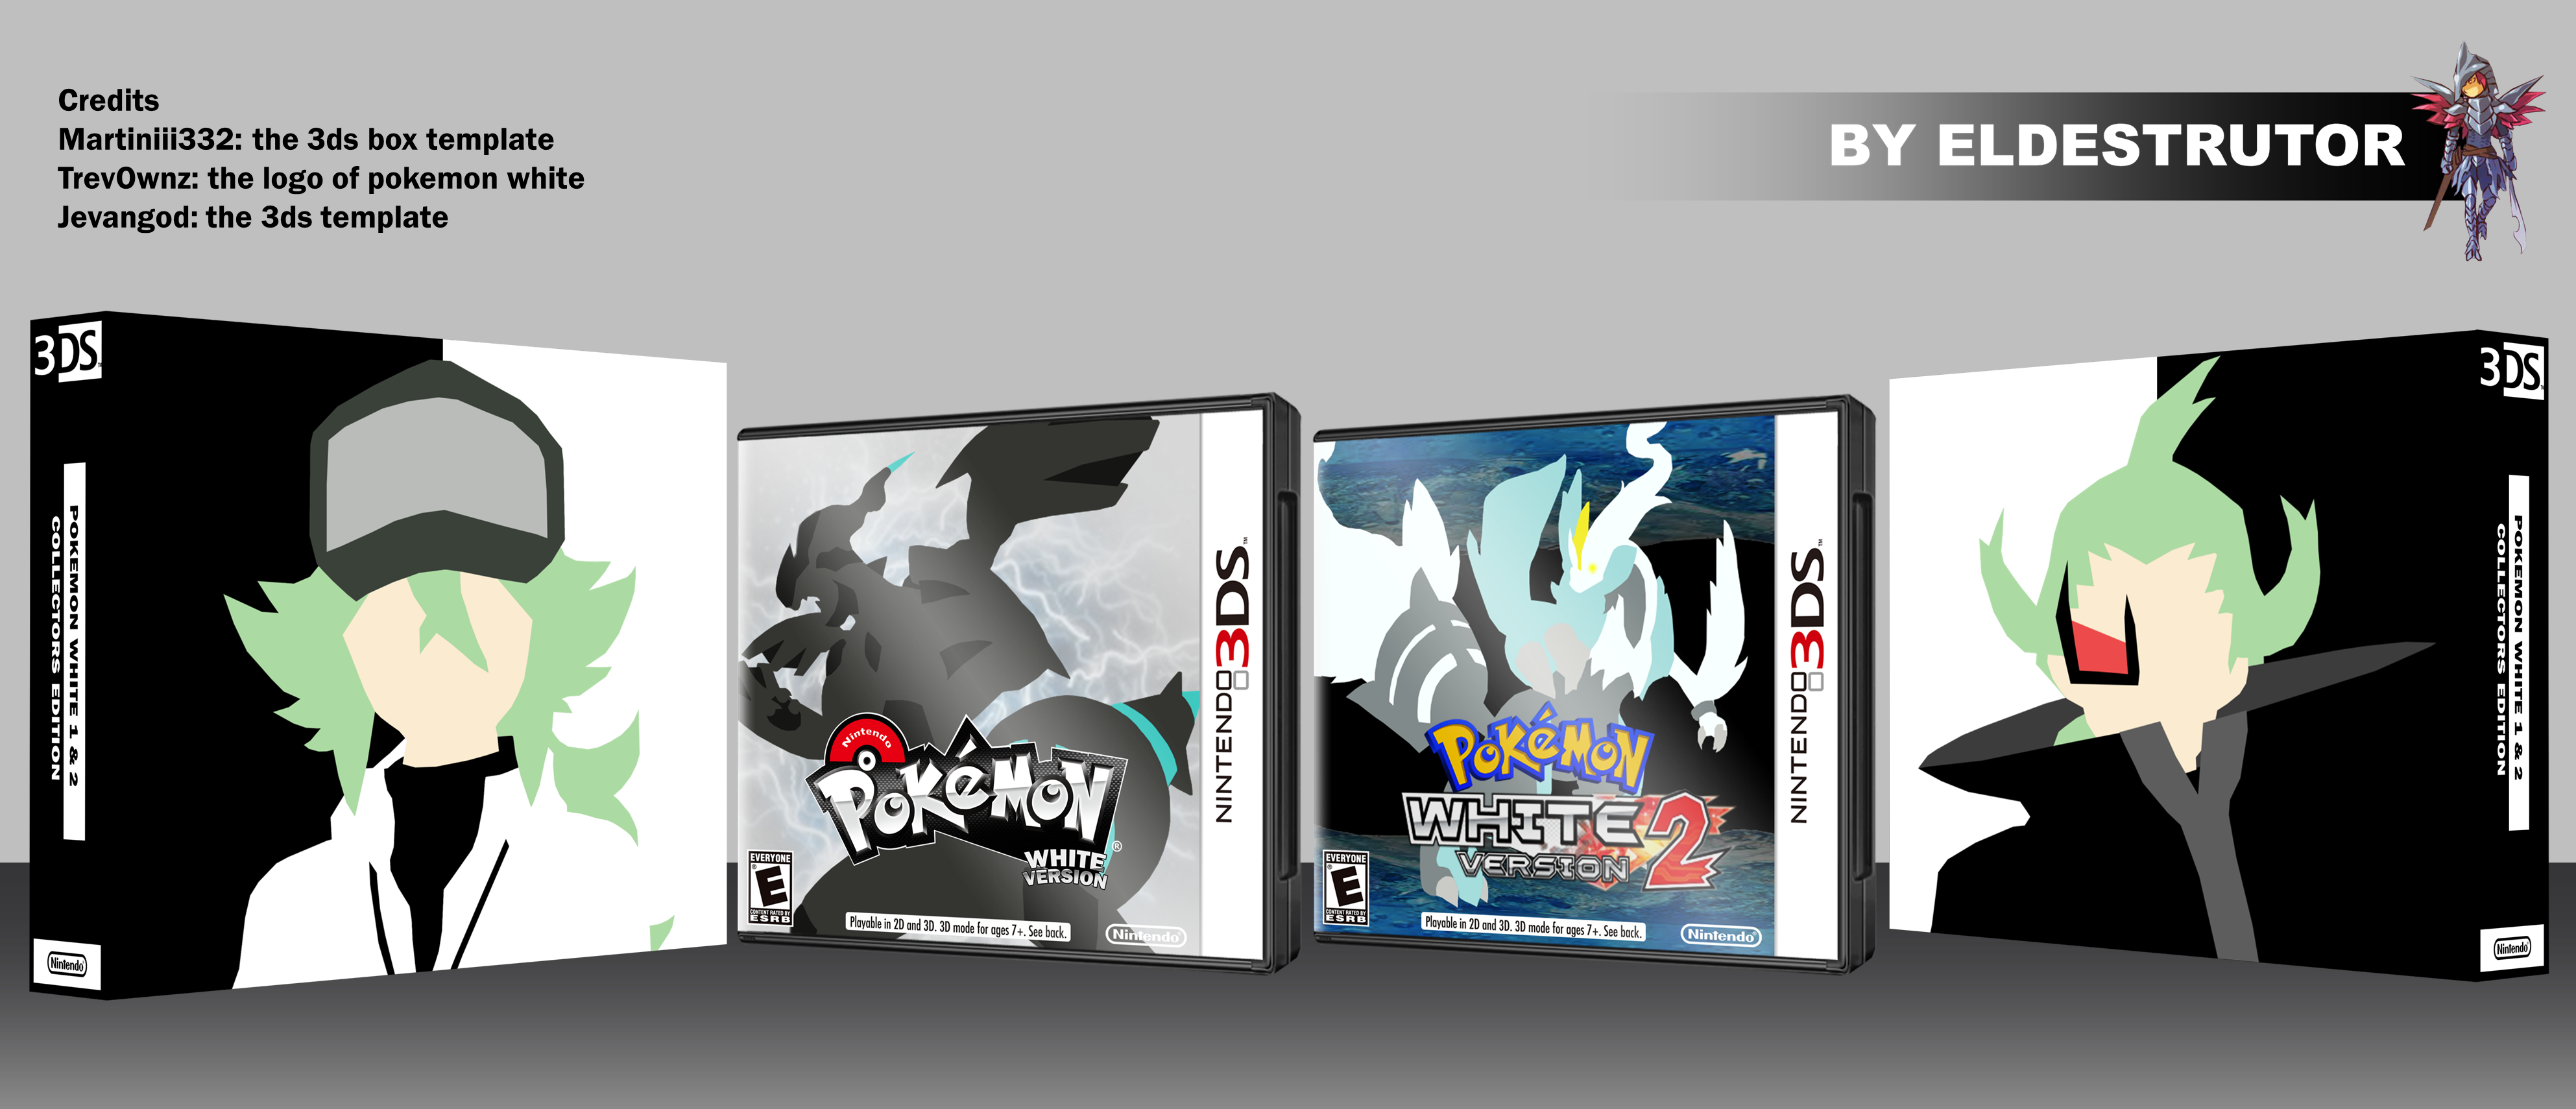 Pokemon white 1 & 2 collectors edition box cover